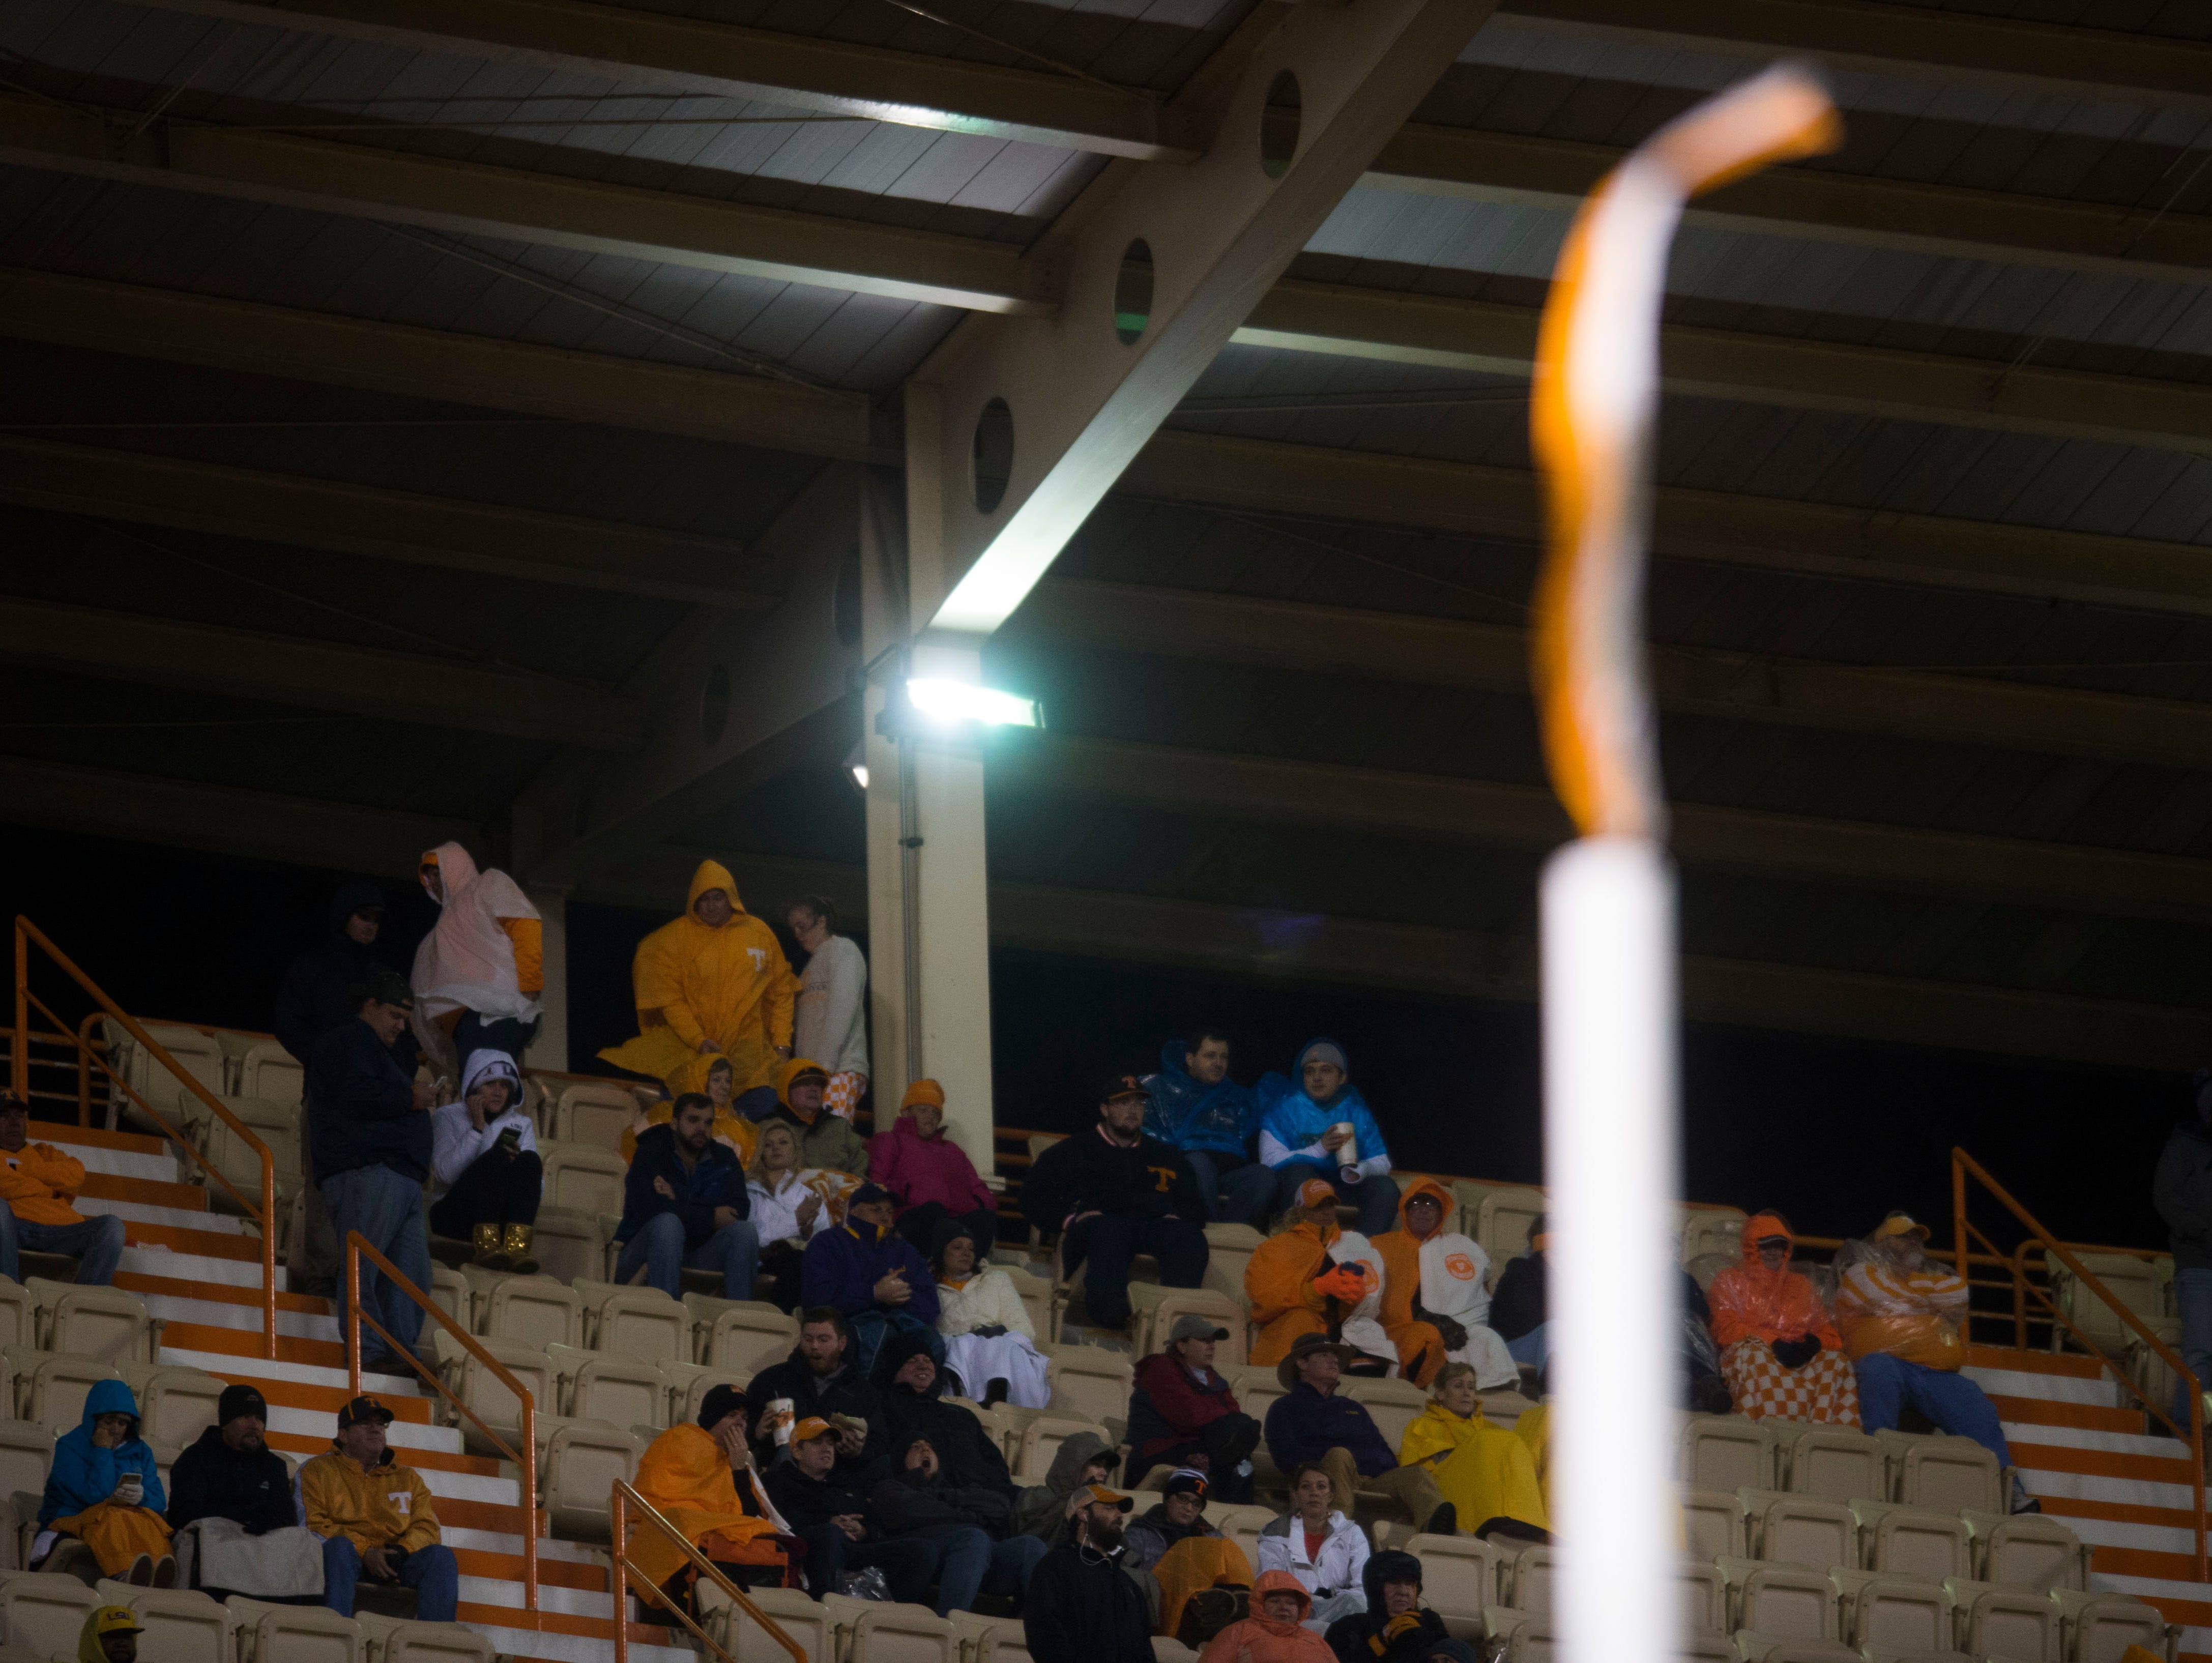 The wind blows a ribbon on the goal post straight up during a game between Tennessee and LSU at Neyland Stadium in Knoxville, Tenn., on Saturday, Nov. 18, 2017. LSU defeated UT 30-10.